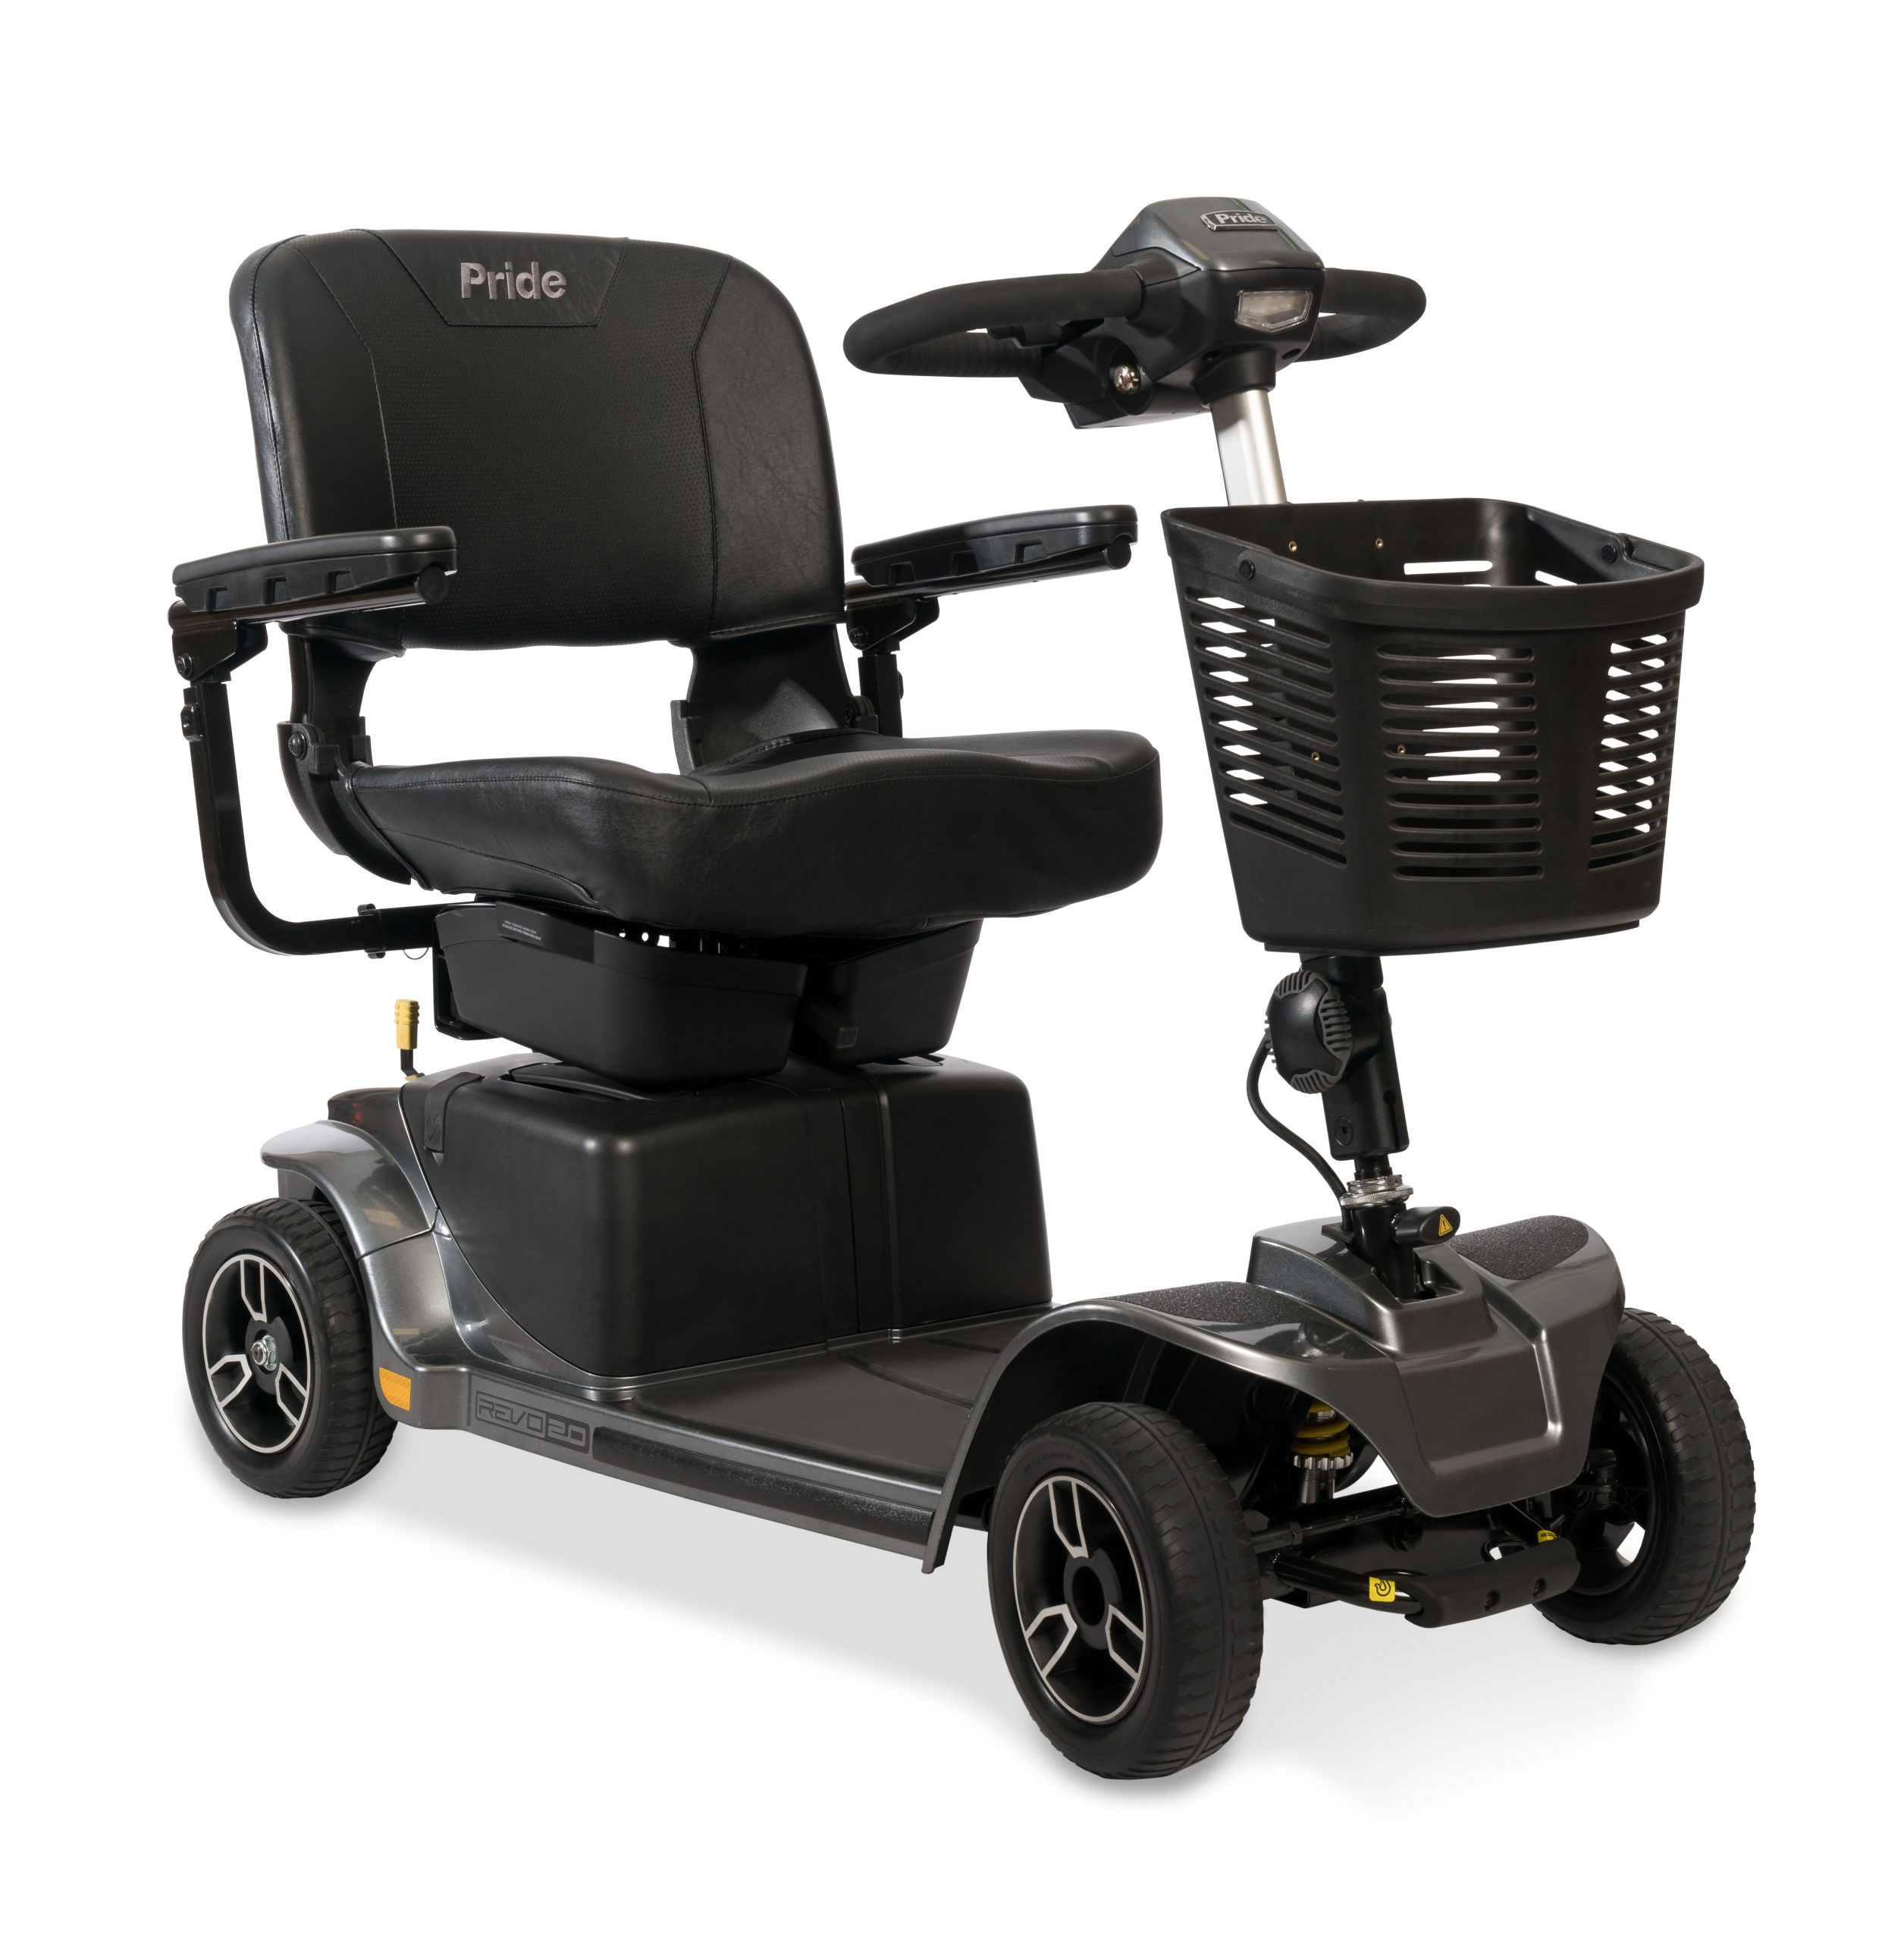 revo-two-four-wheel-scooter-gray